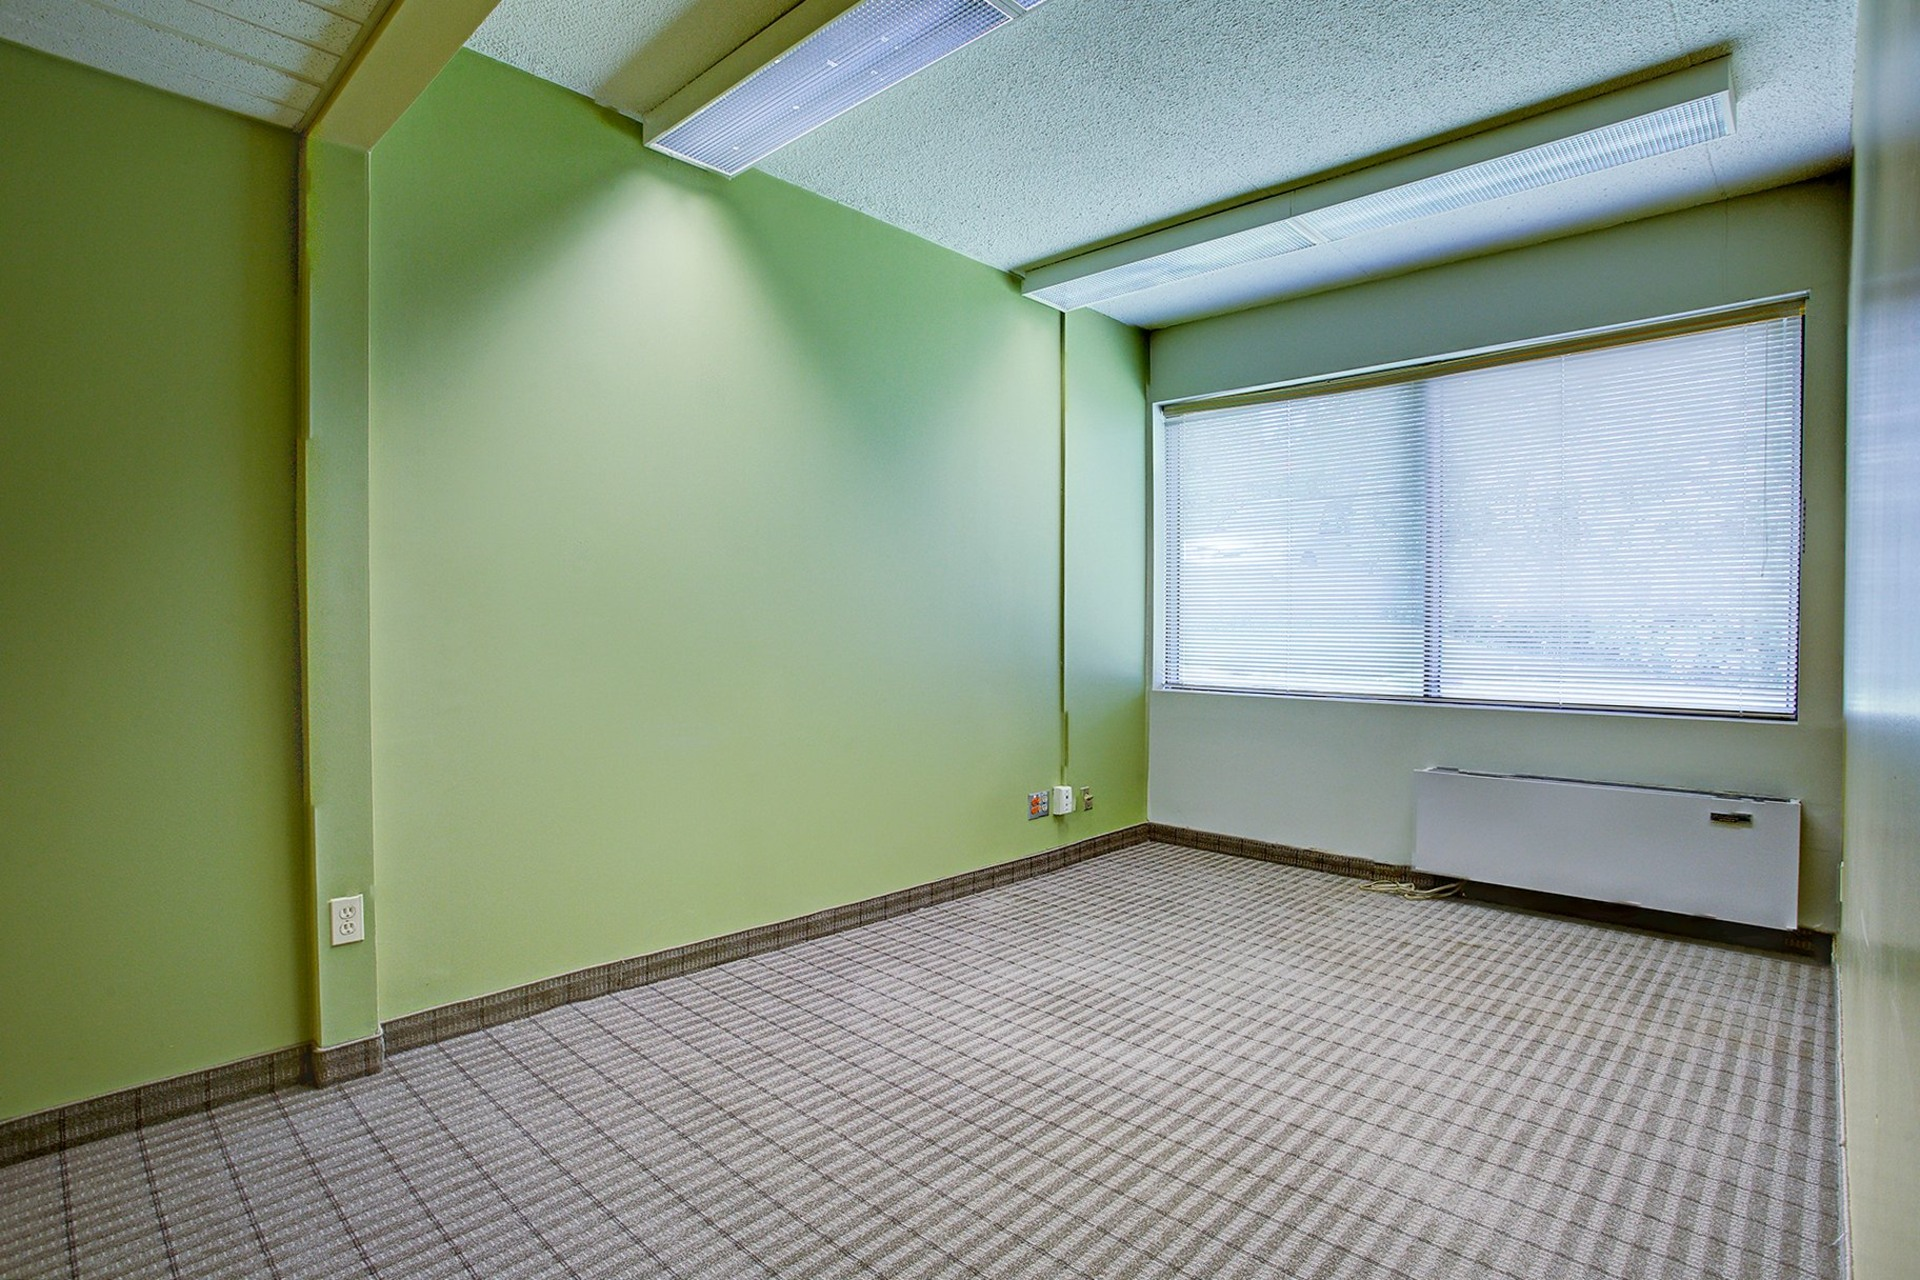 image 11 - Office For rent Rigaud